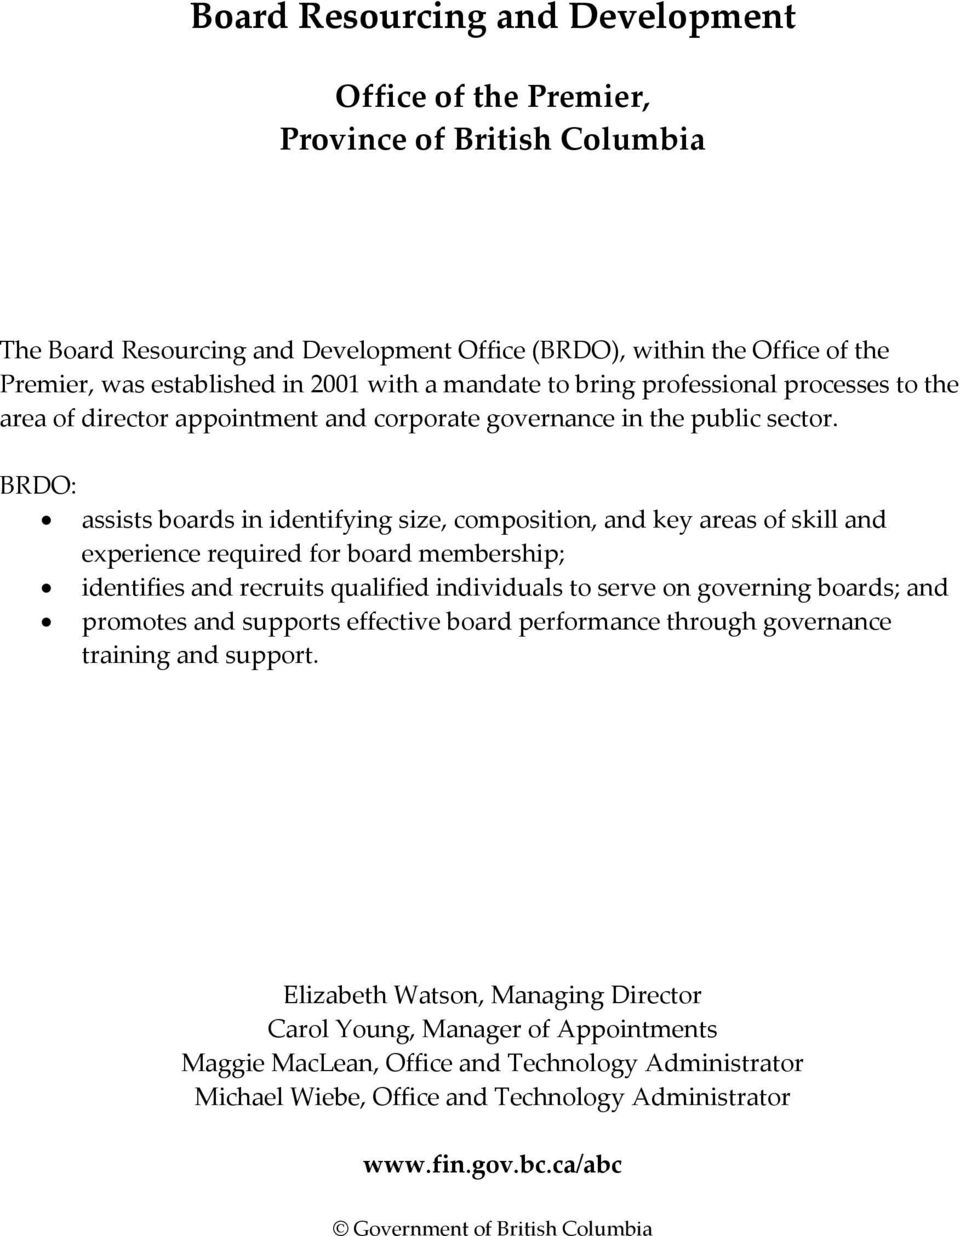 BRDO: assists boards in identifying size, composition, and key areas of skill and experience required for board membership; identifies and recruits qualified individuals to serve on governing boards;